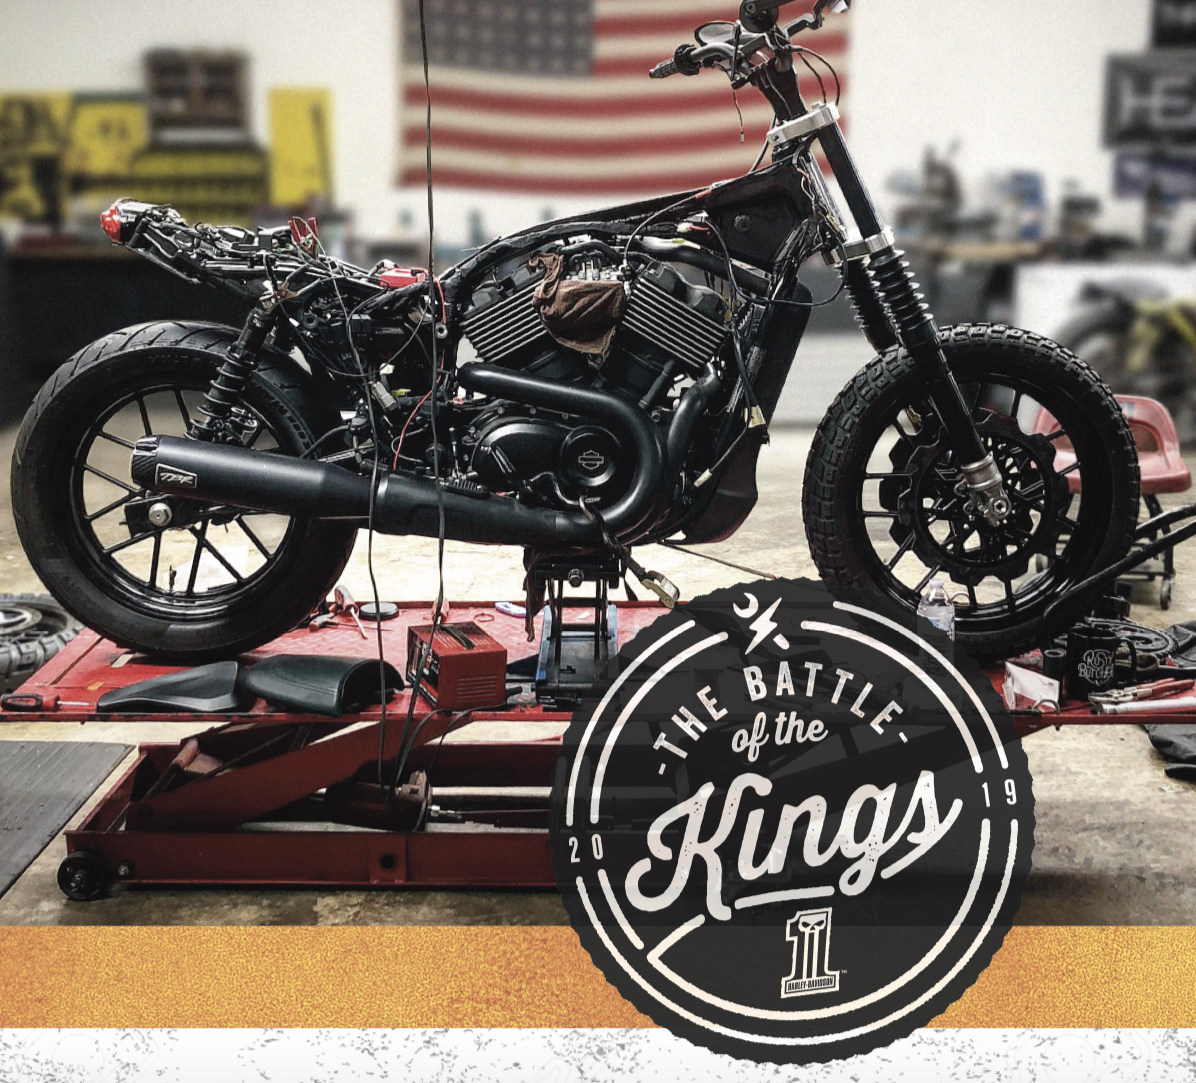 Harley-Davidson BATTLE OF THE KINGS